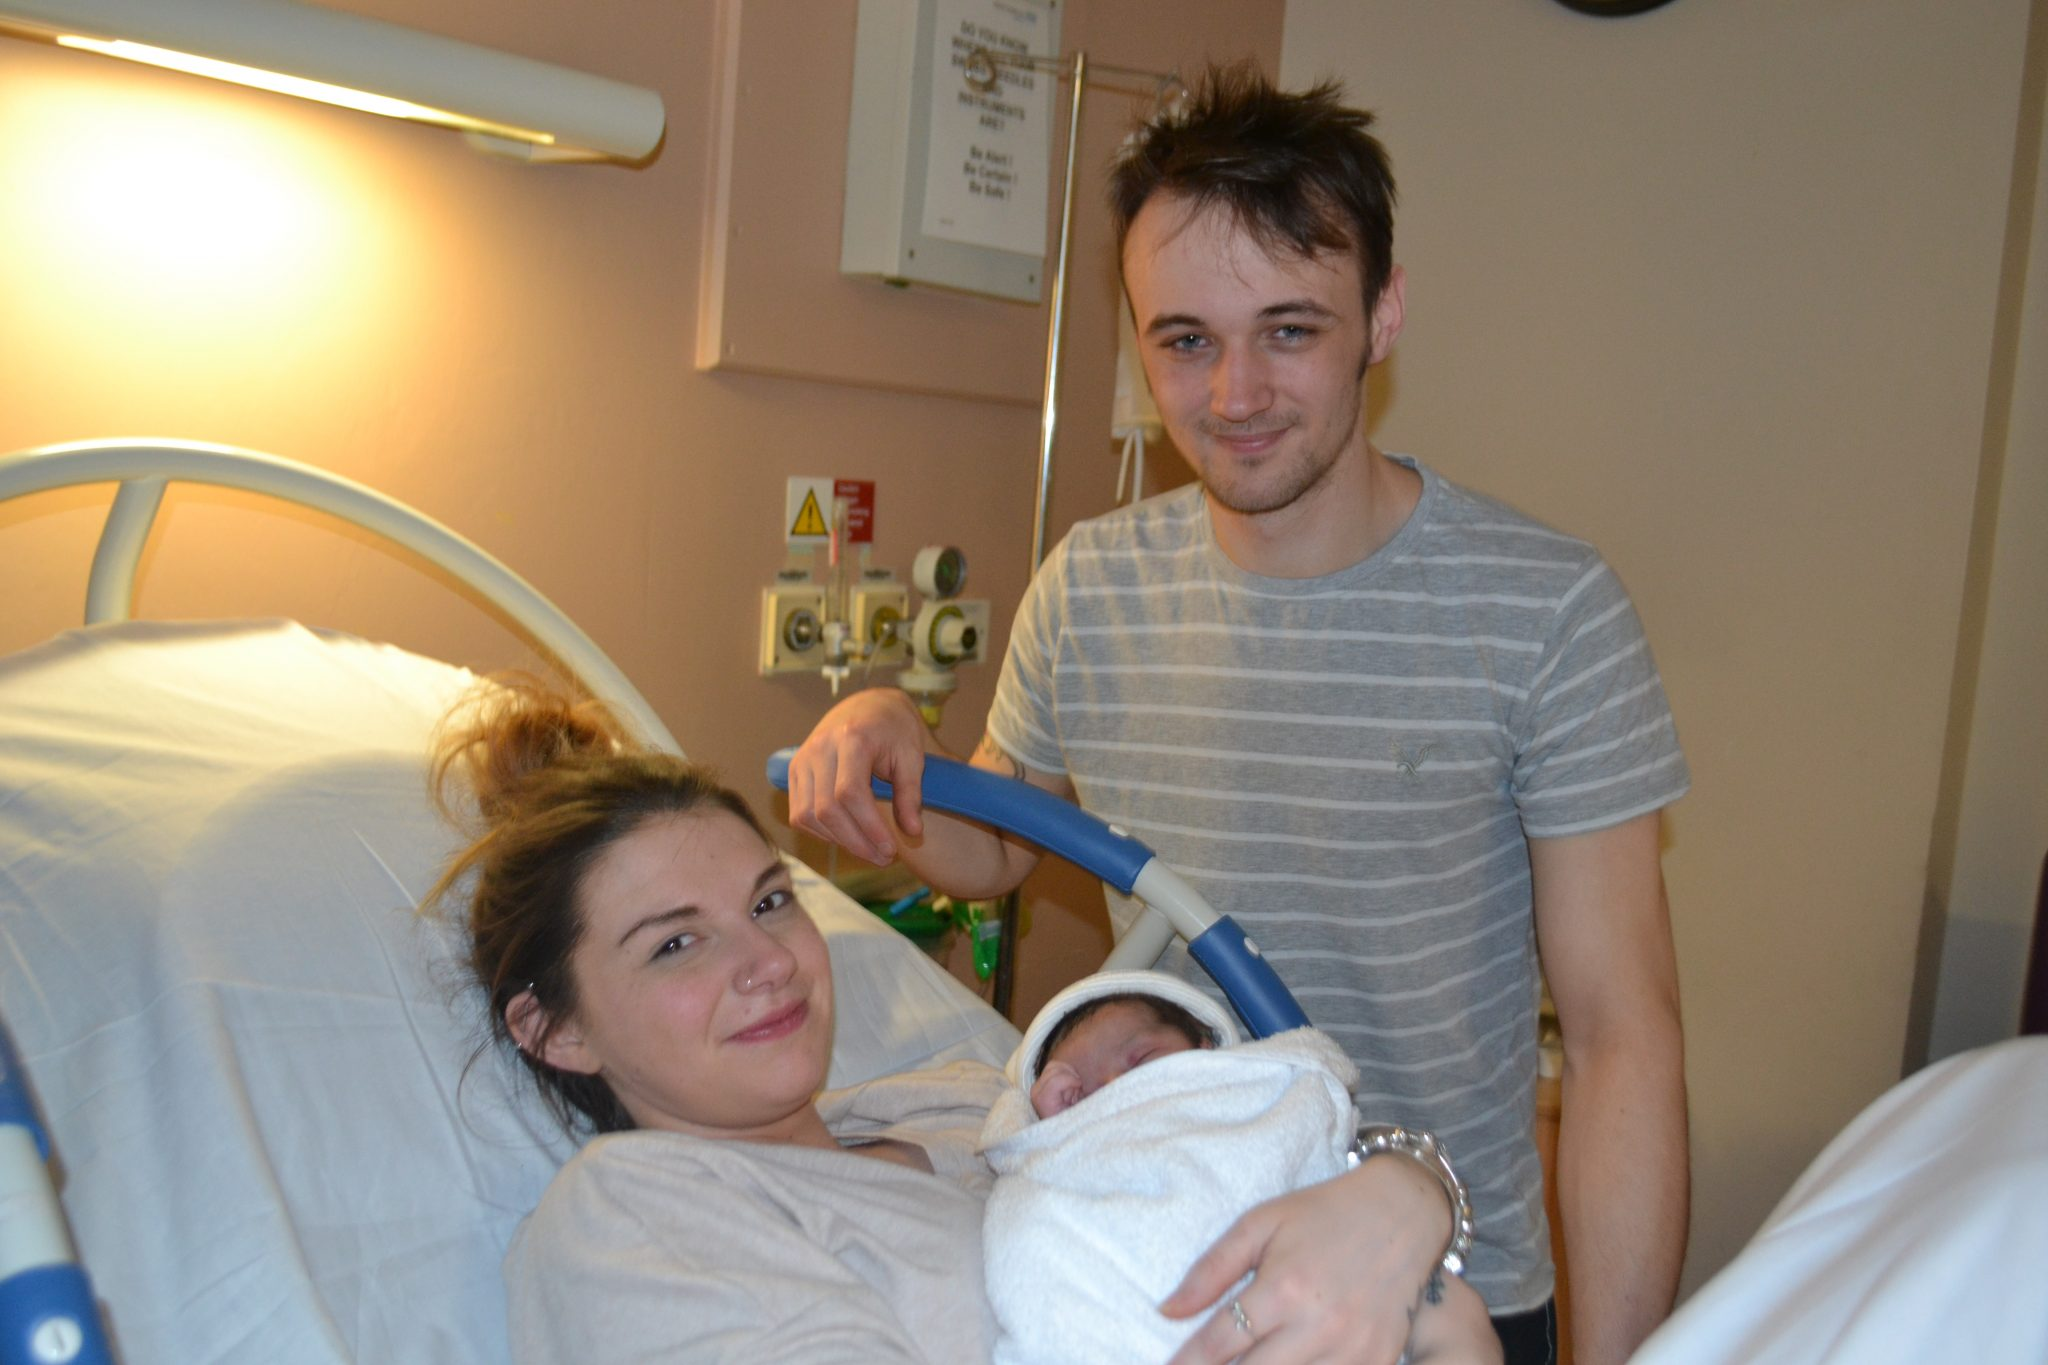 Leo was the first baby boy born on Christmas day